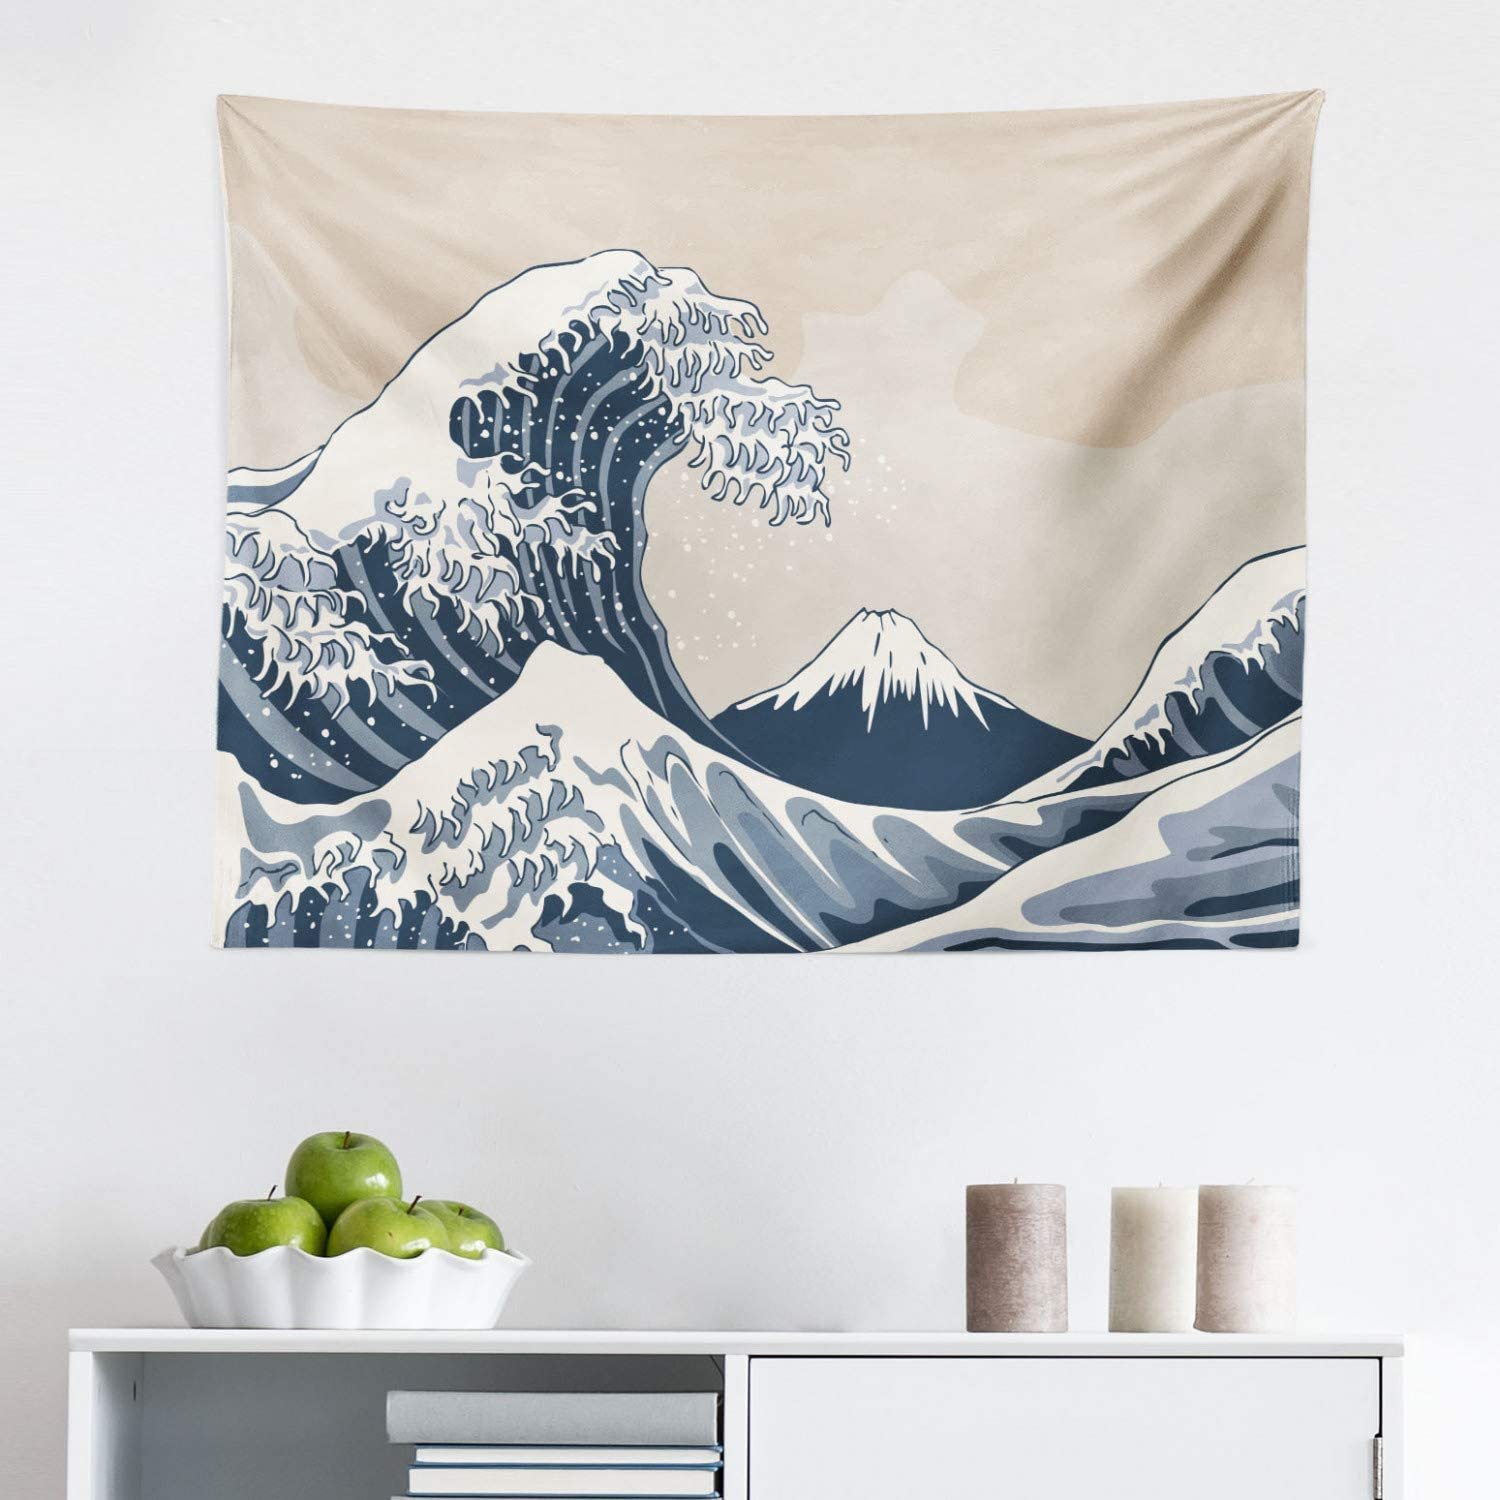 """Lunarable Wave Tapestry, Oriental Culture Hand Drawn Style Japanese Motifs Illustration Wave, Fabric Wall Hanging Decor for Bedroom Living Room Dorm, 28"""" X 23"""", Blue Grey"""